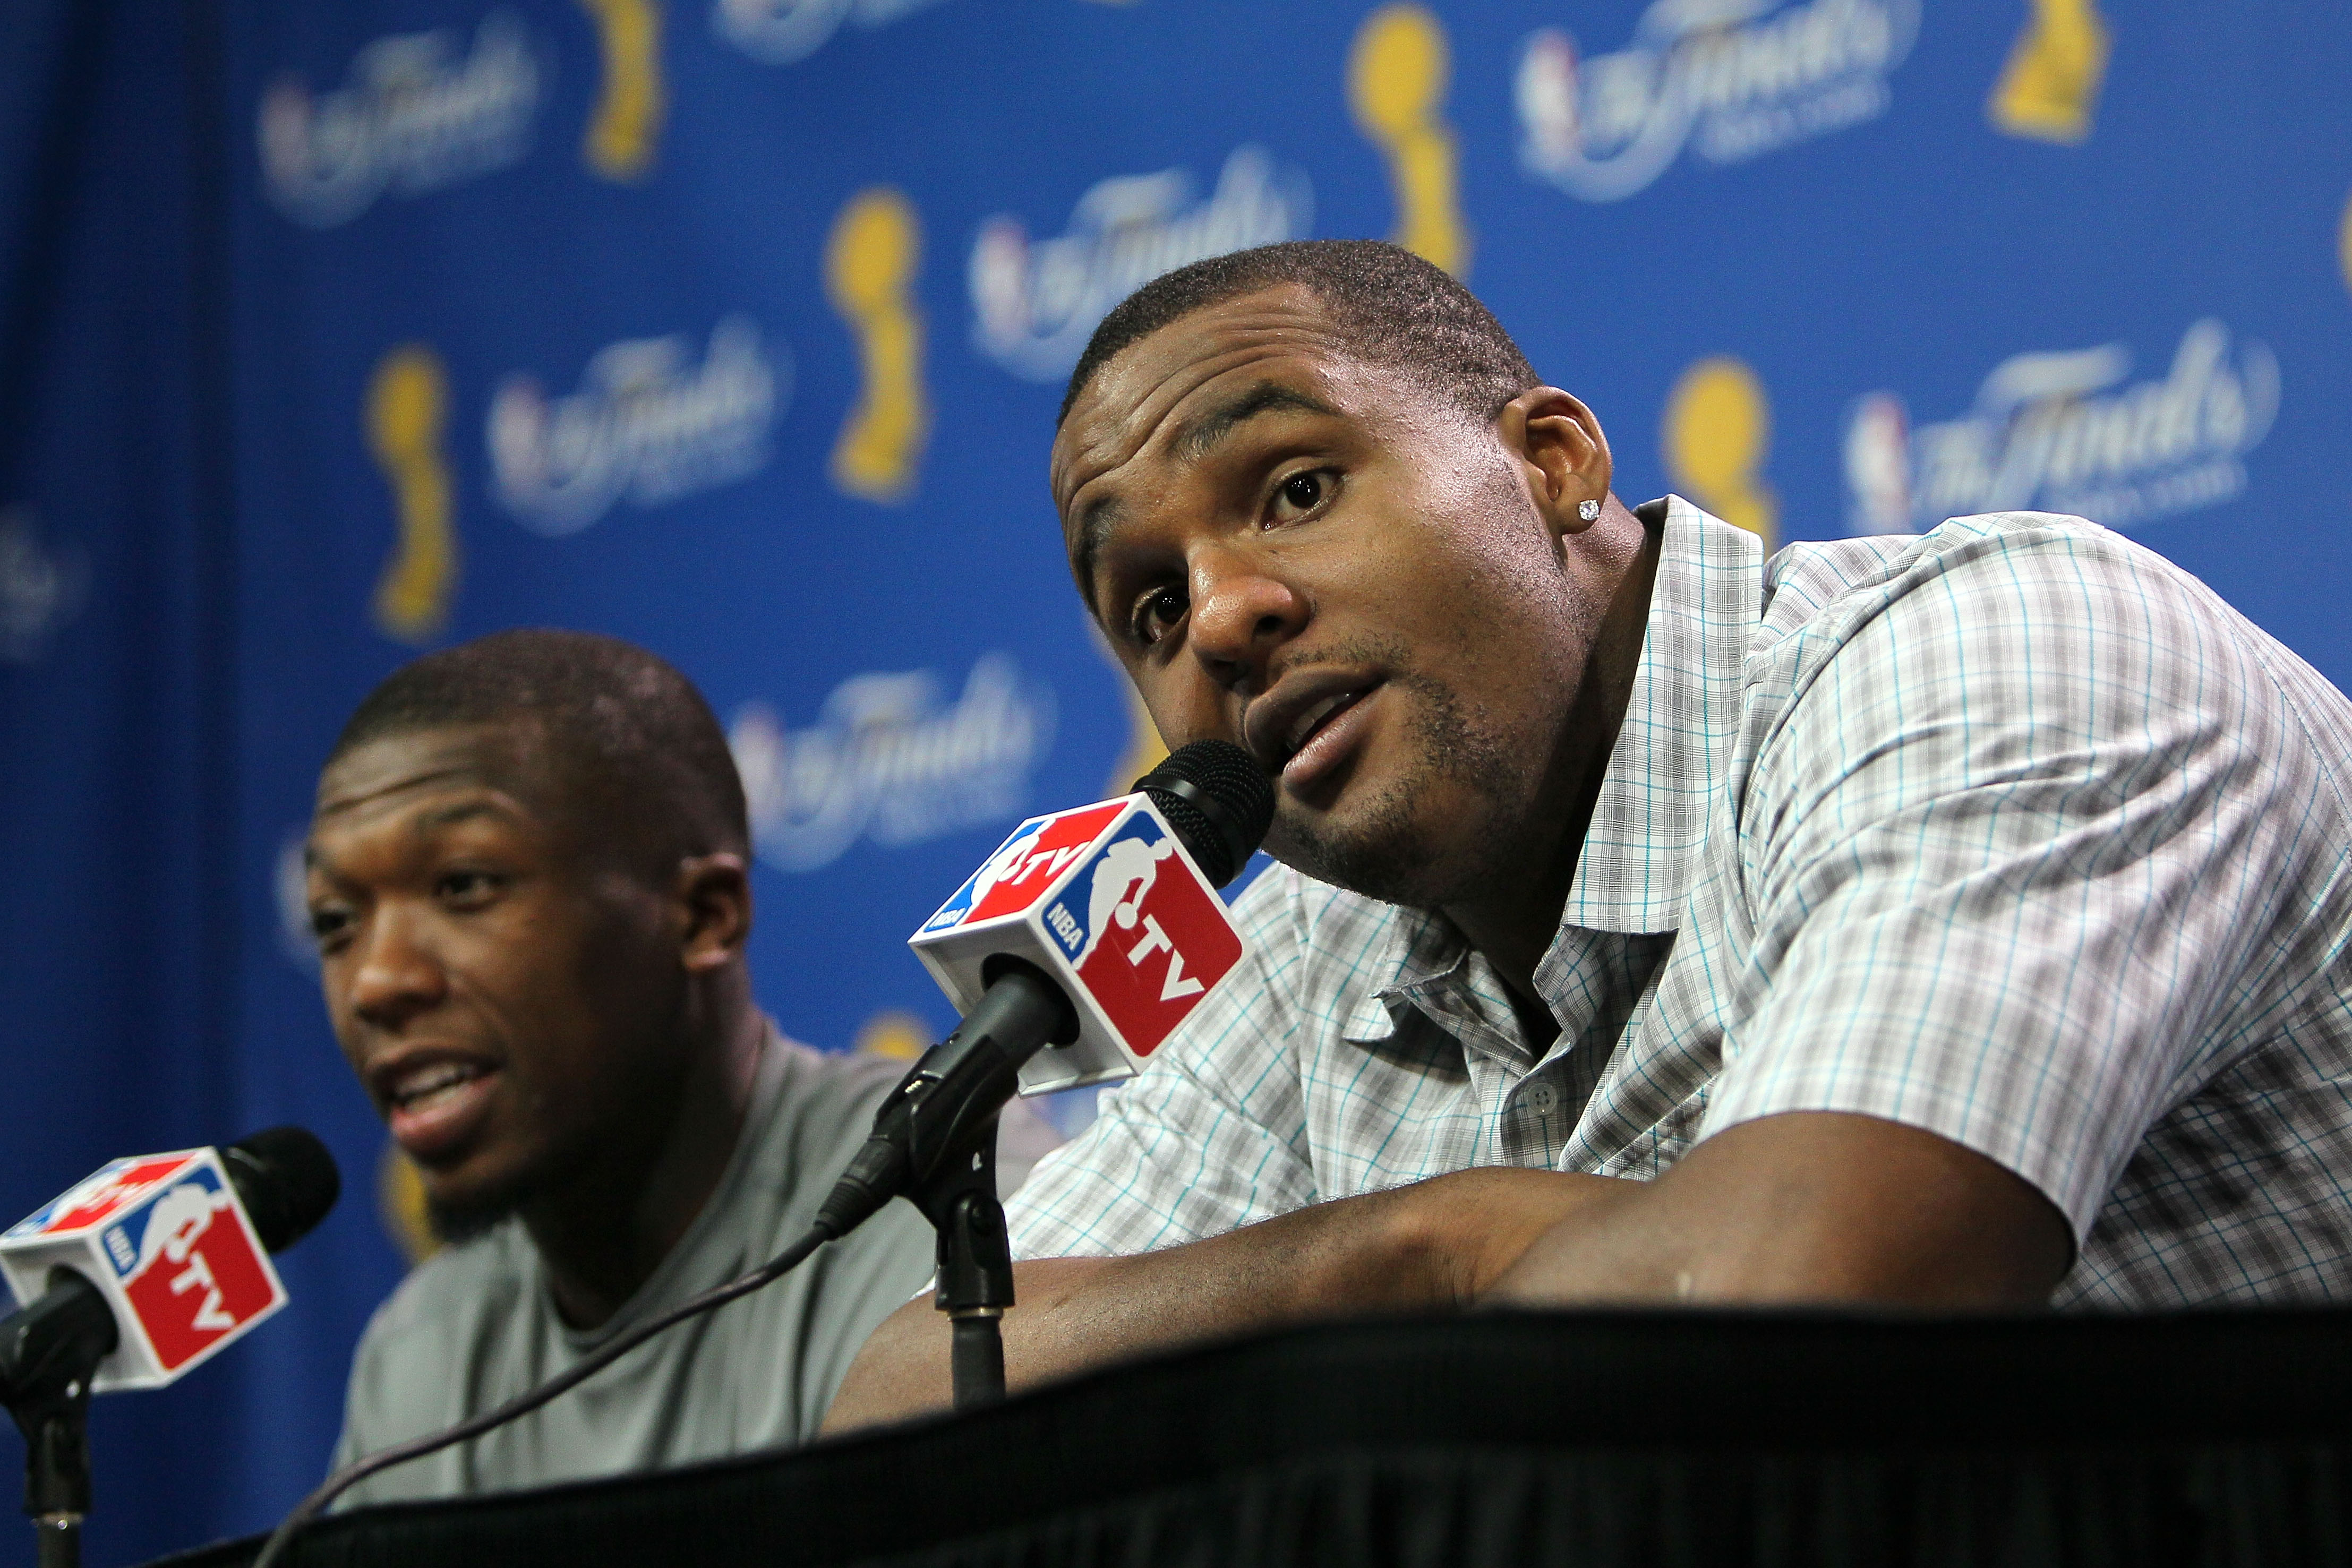 BOSTON - JUNE 10:  Nate Robinson #4 and Glen Davis #11 of the Boston Celtics speak to the media after the Celtics defeated the Los Angeles Lakers during Game Four of the 2010 NBA Finals on June 10, 2010 at TD Garden in Boston, Massachusetts. NOTE TO USER: